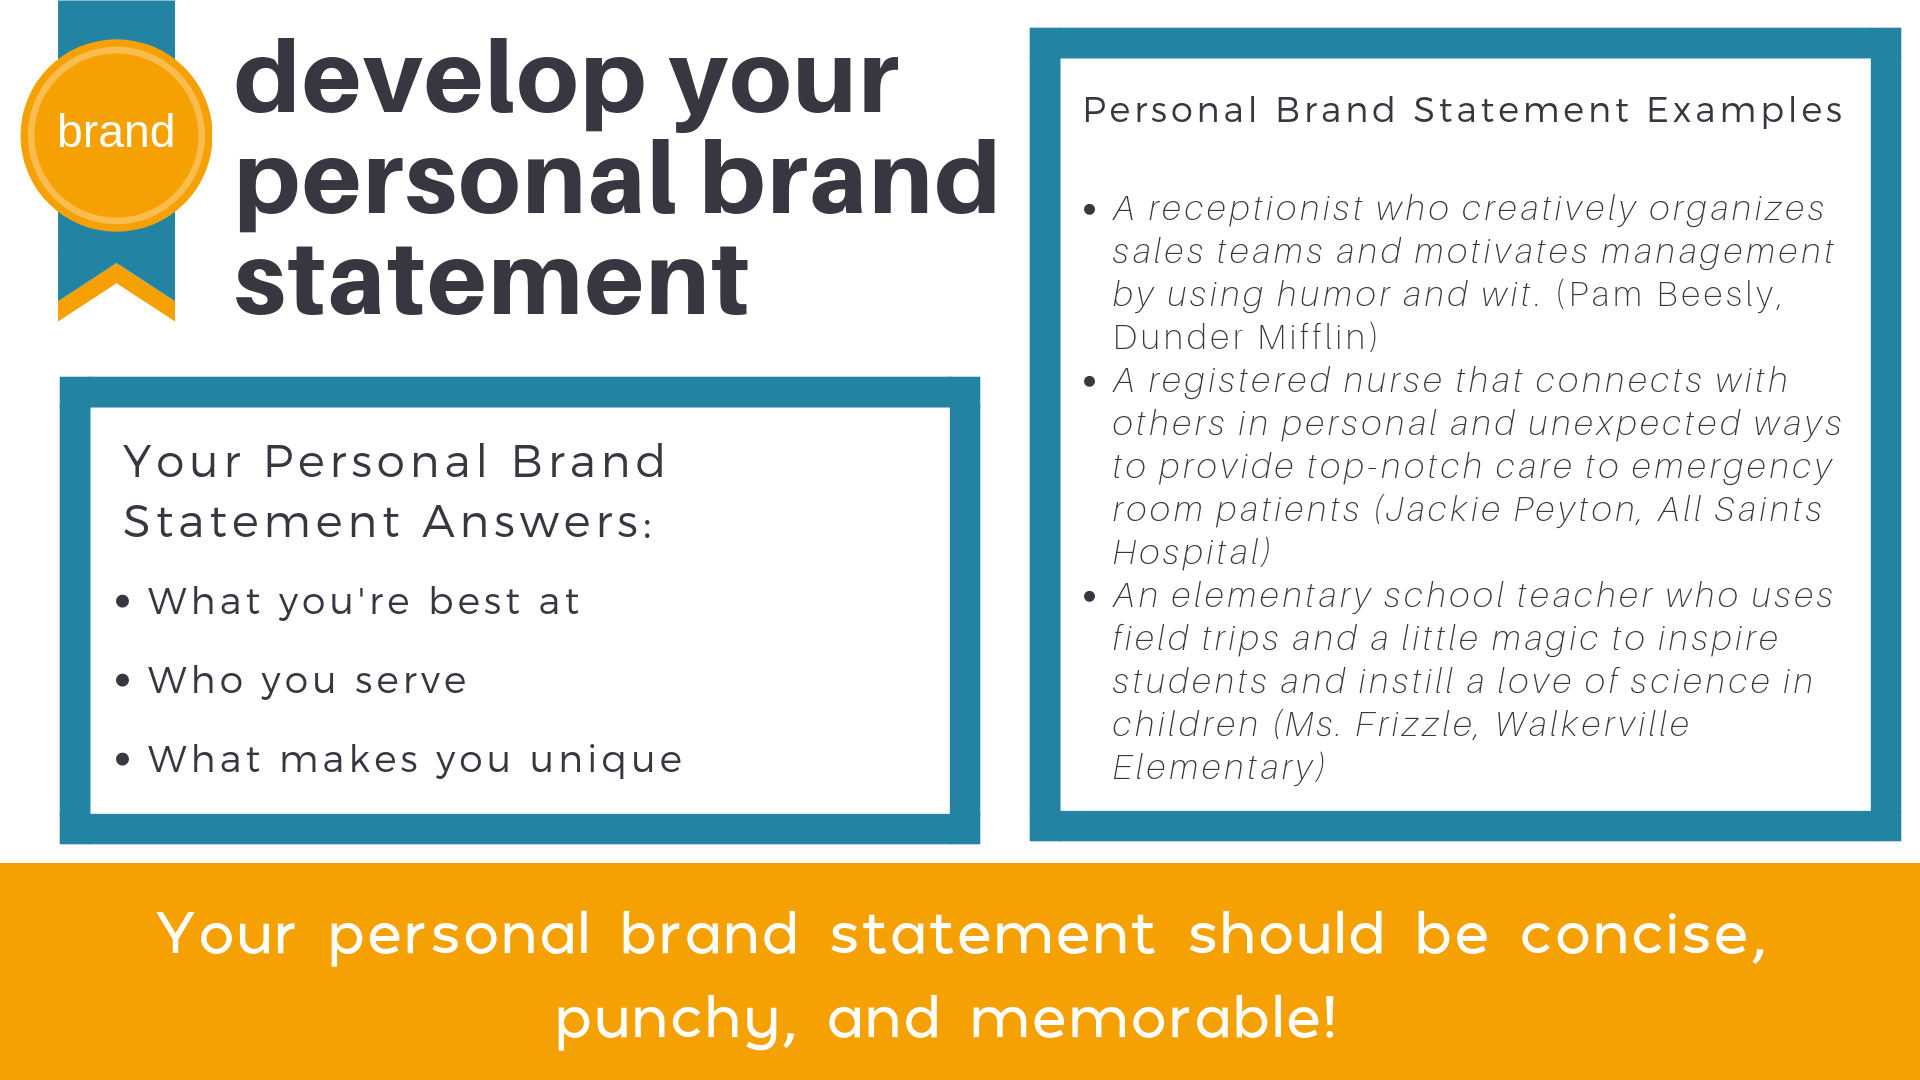 What's your personal brand statement? If you don't have one, you're missing out on career opportunities. Here's how to write a personal brand statement that stands out and why you need one in the first place.